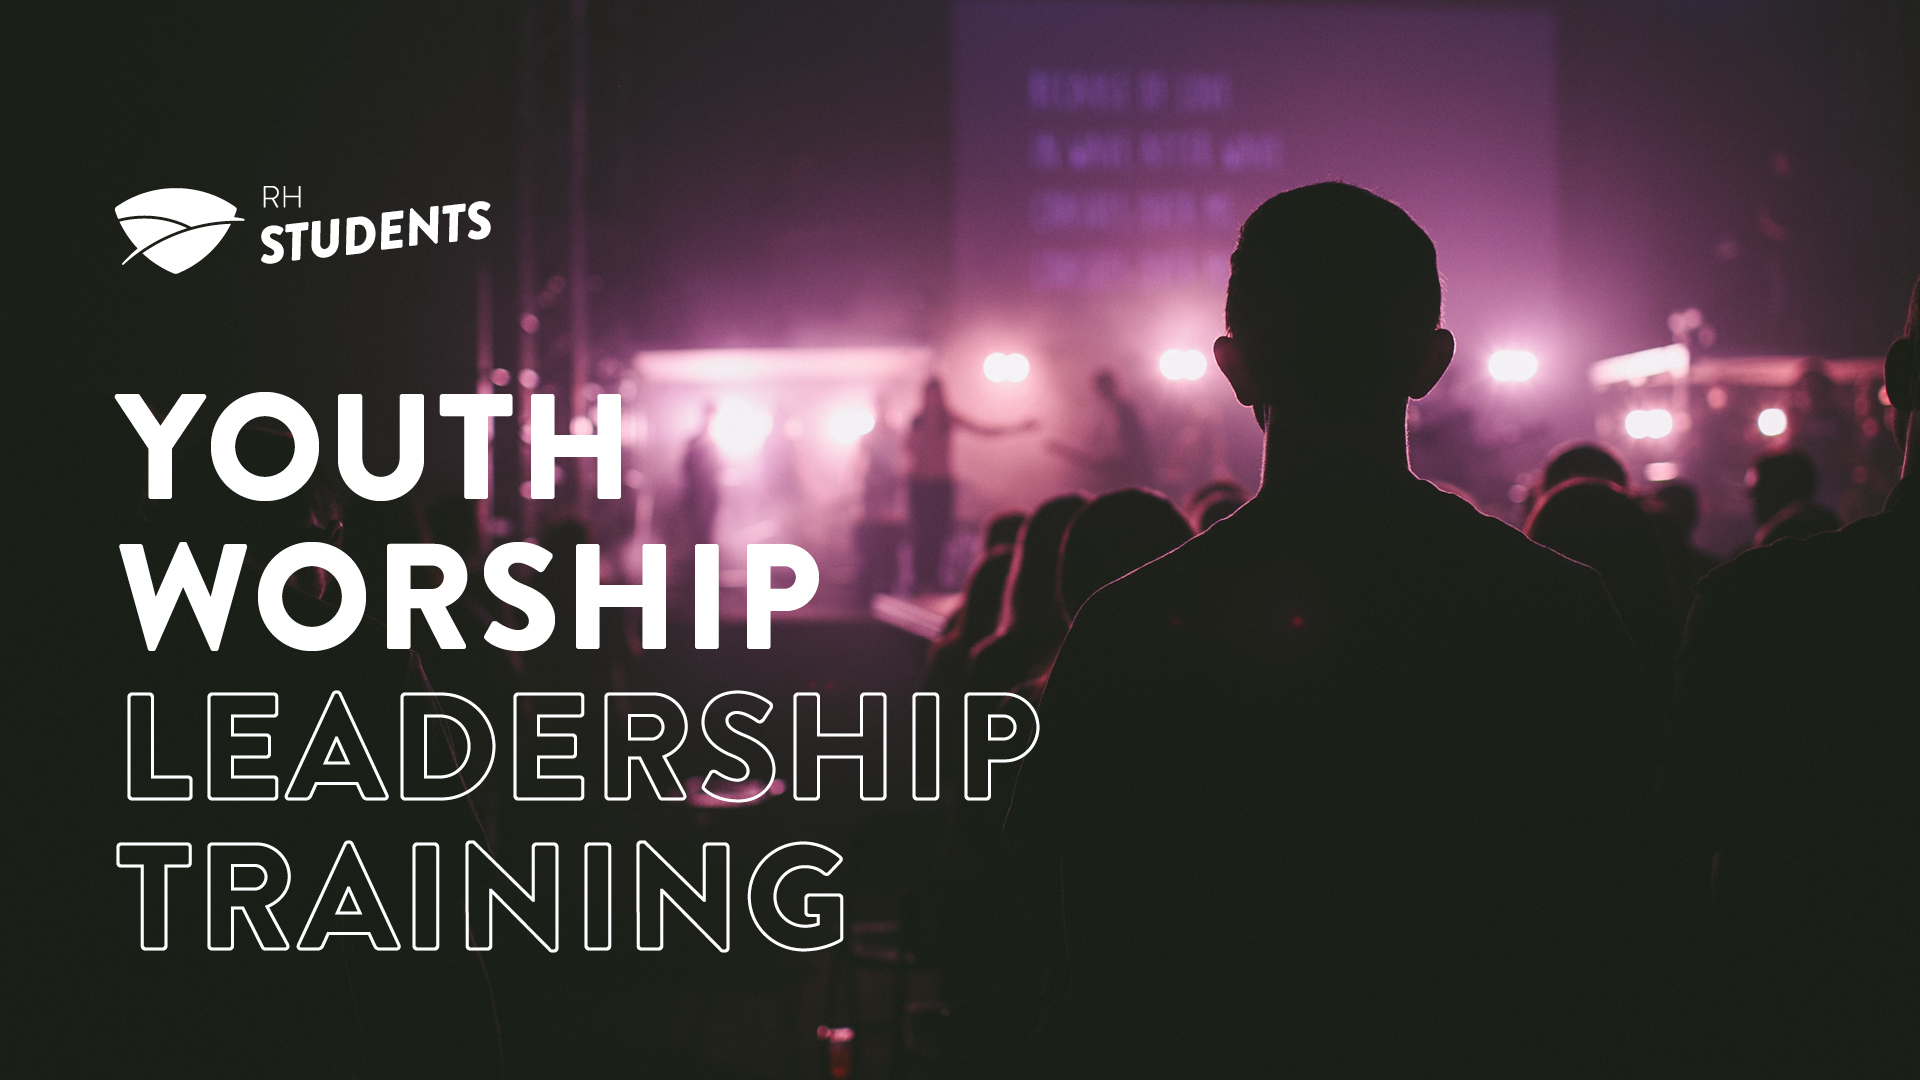 Youth worship leadership training 2018 title